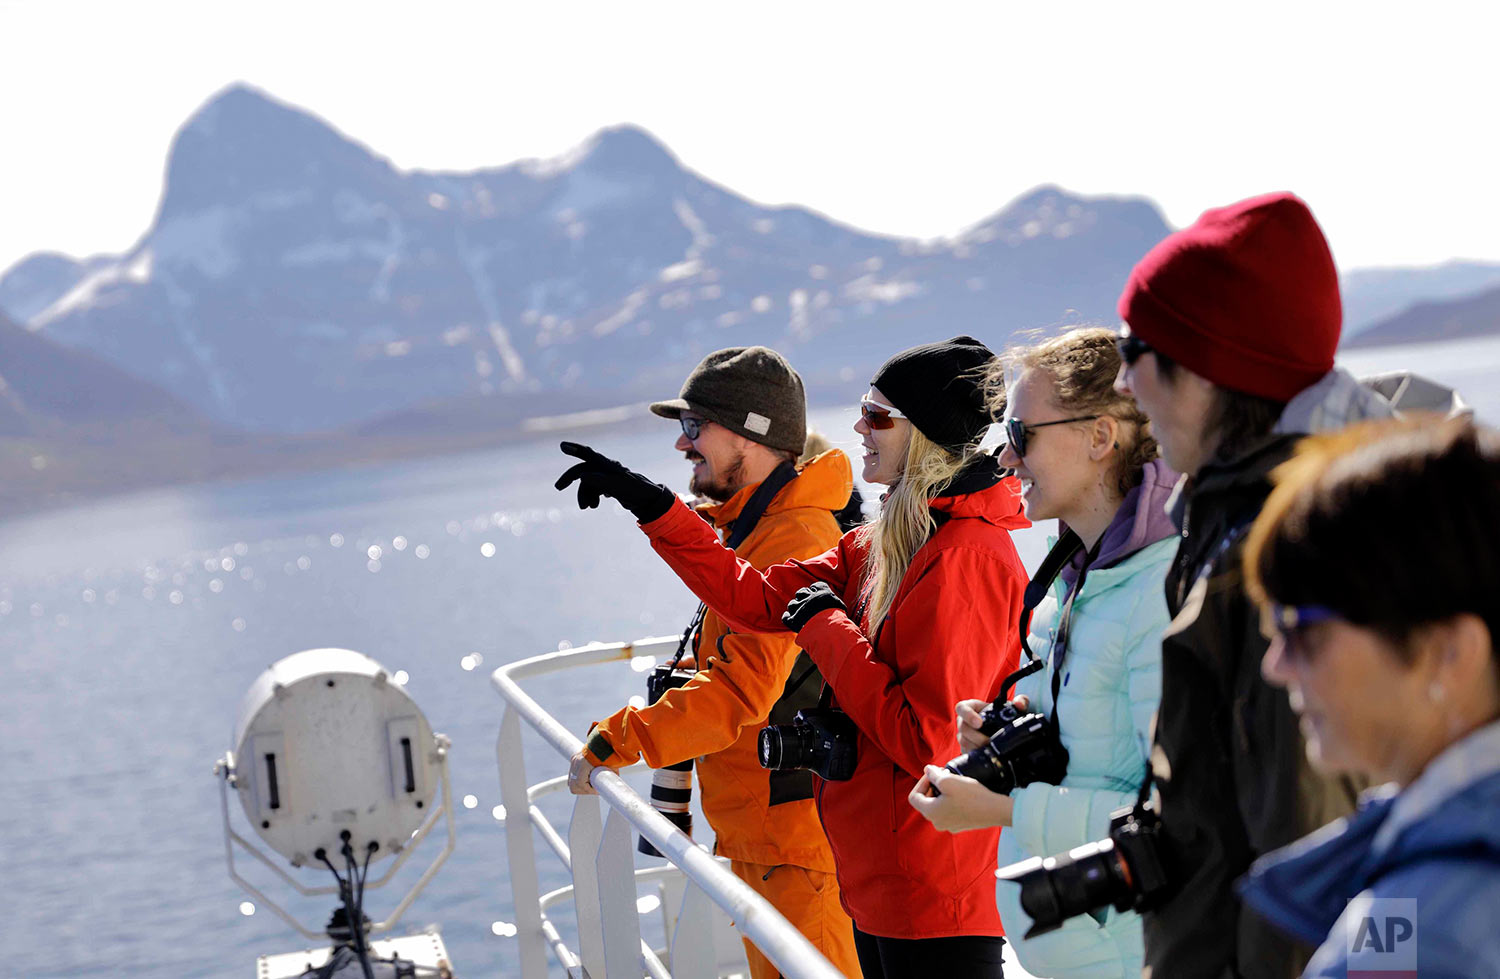 Tiina Jaaskelainen, second from left, and fellow researchers look out from the Finnish icebreaker MSV Nordica as it arrives into Nuuk, Greenland, after traversing the Northwest Passage through the Canadian Arctic Archipelago, Saturday, July 29, 2017. After 24 days at sea and a journey spanning more than 10,000 kilometers (6,214 miles), the MSV Nordica has set a new record for the earliest transit of the fabled Northwest Passage. The once-forbidding route through the Arctic, linking the Pacific and the Atlantic oceans, has been opening up sooner and for a longer period each summer due to climate change. (AP Photo/David Goldman)